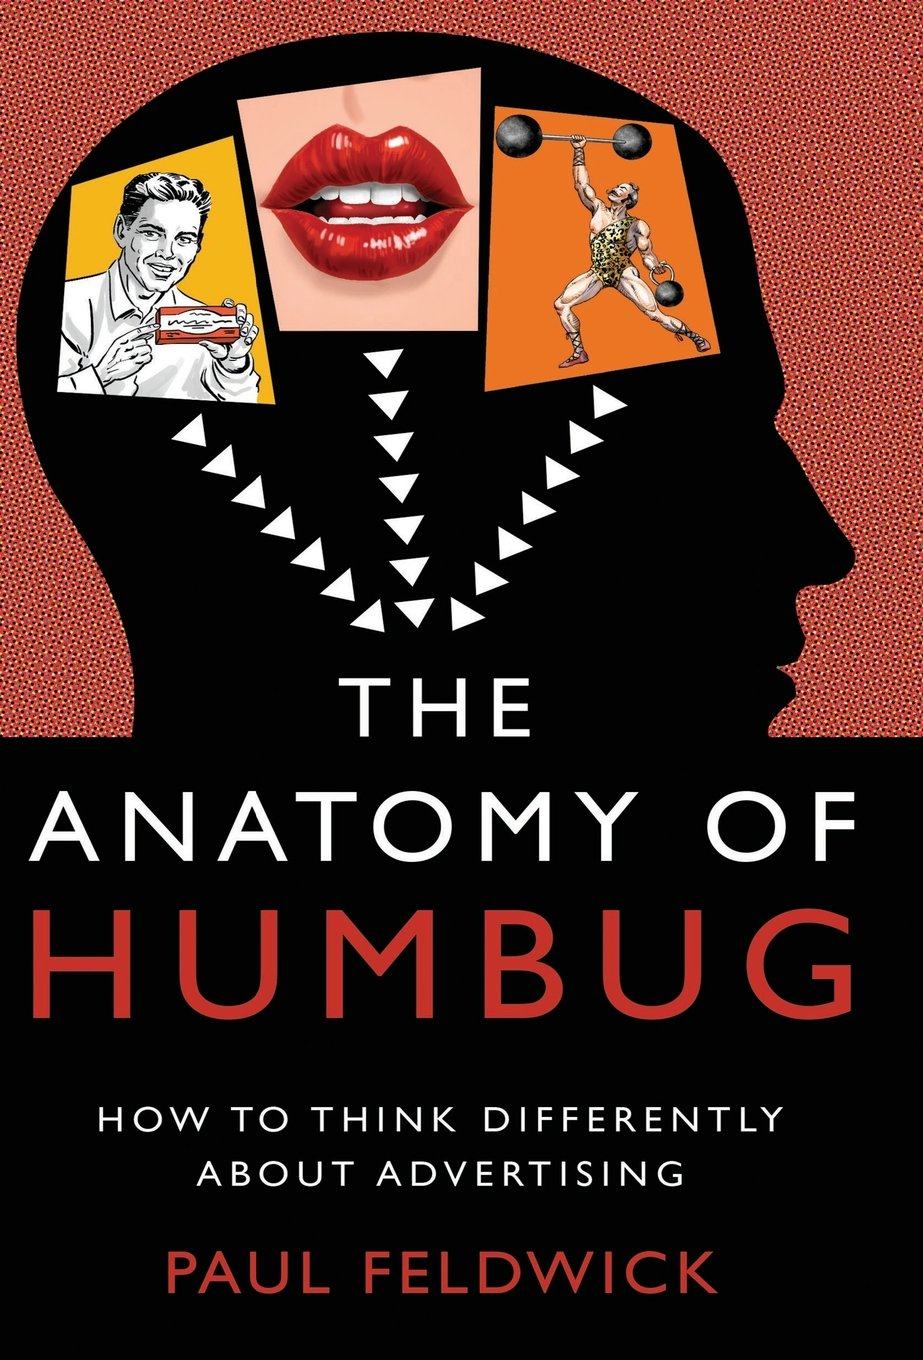 The Anatomy of Humbug Book cover